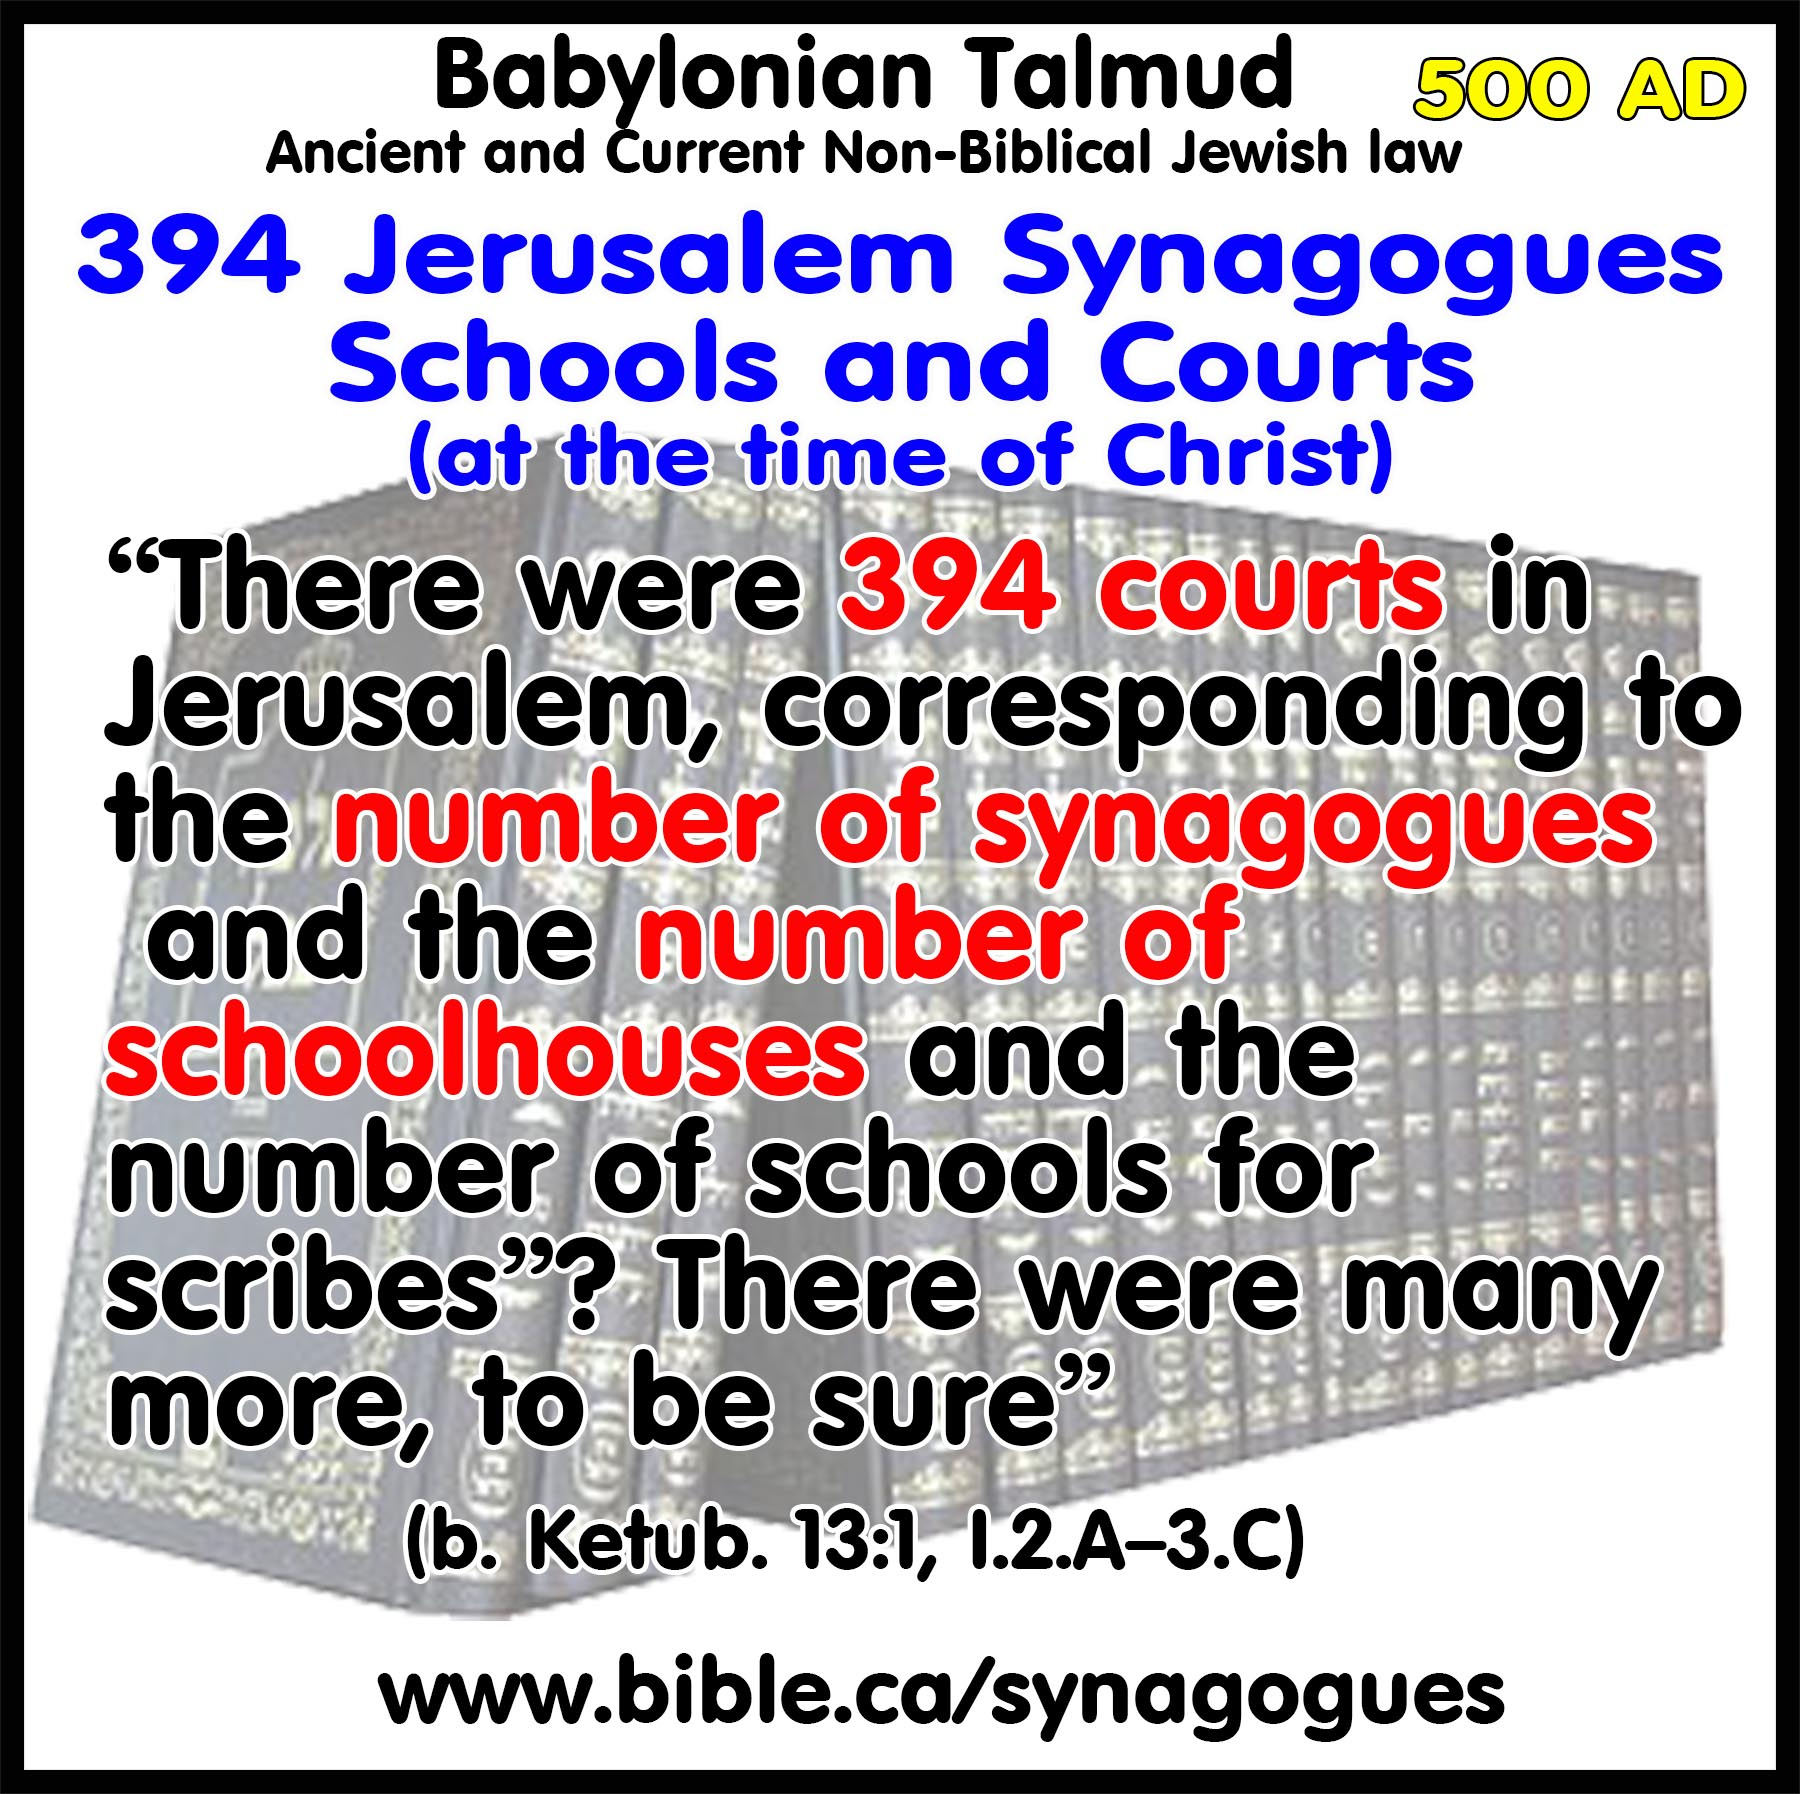 What does the talmud say about jesus